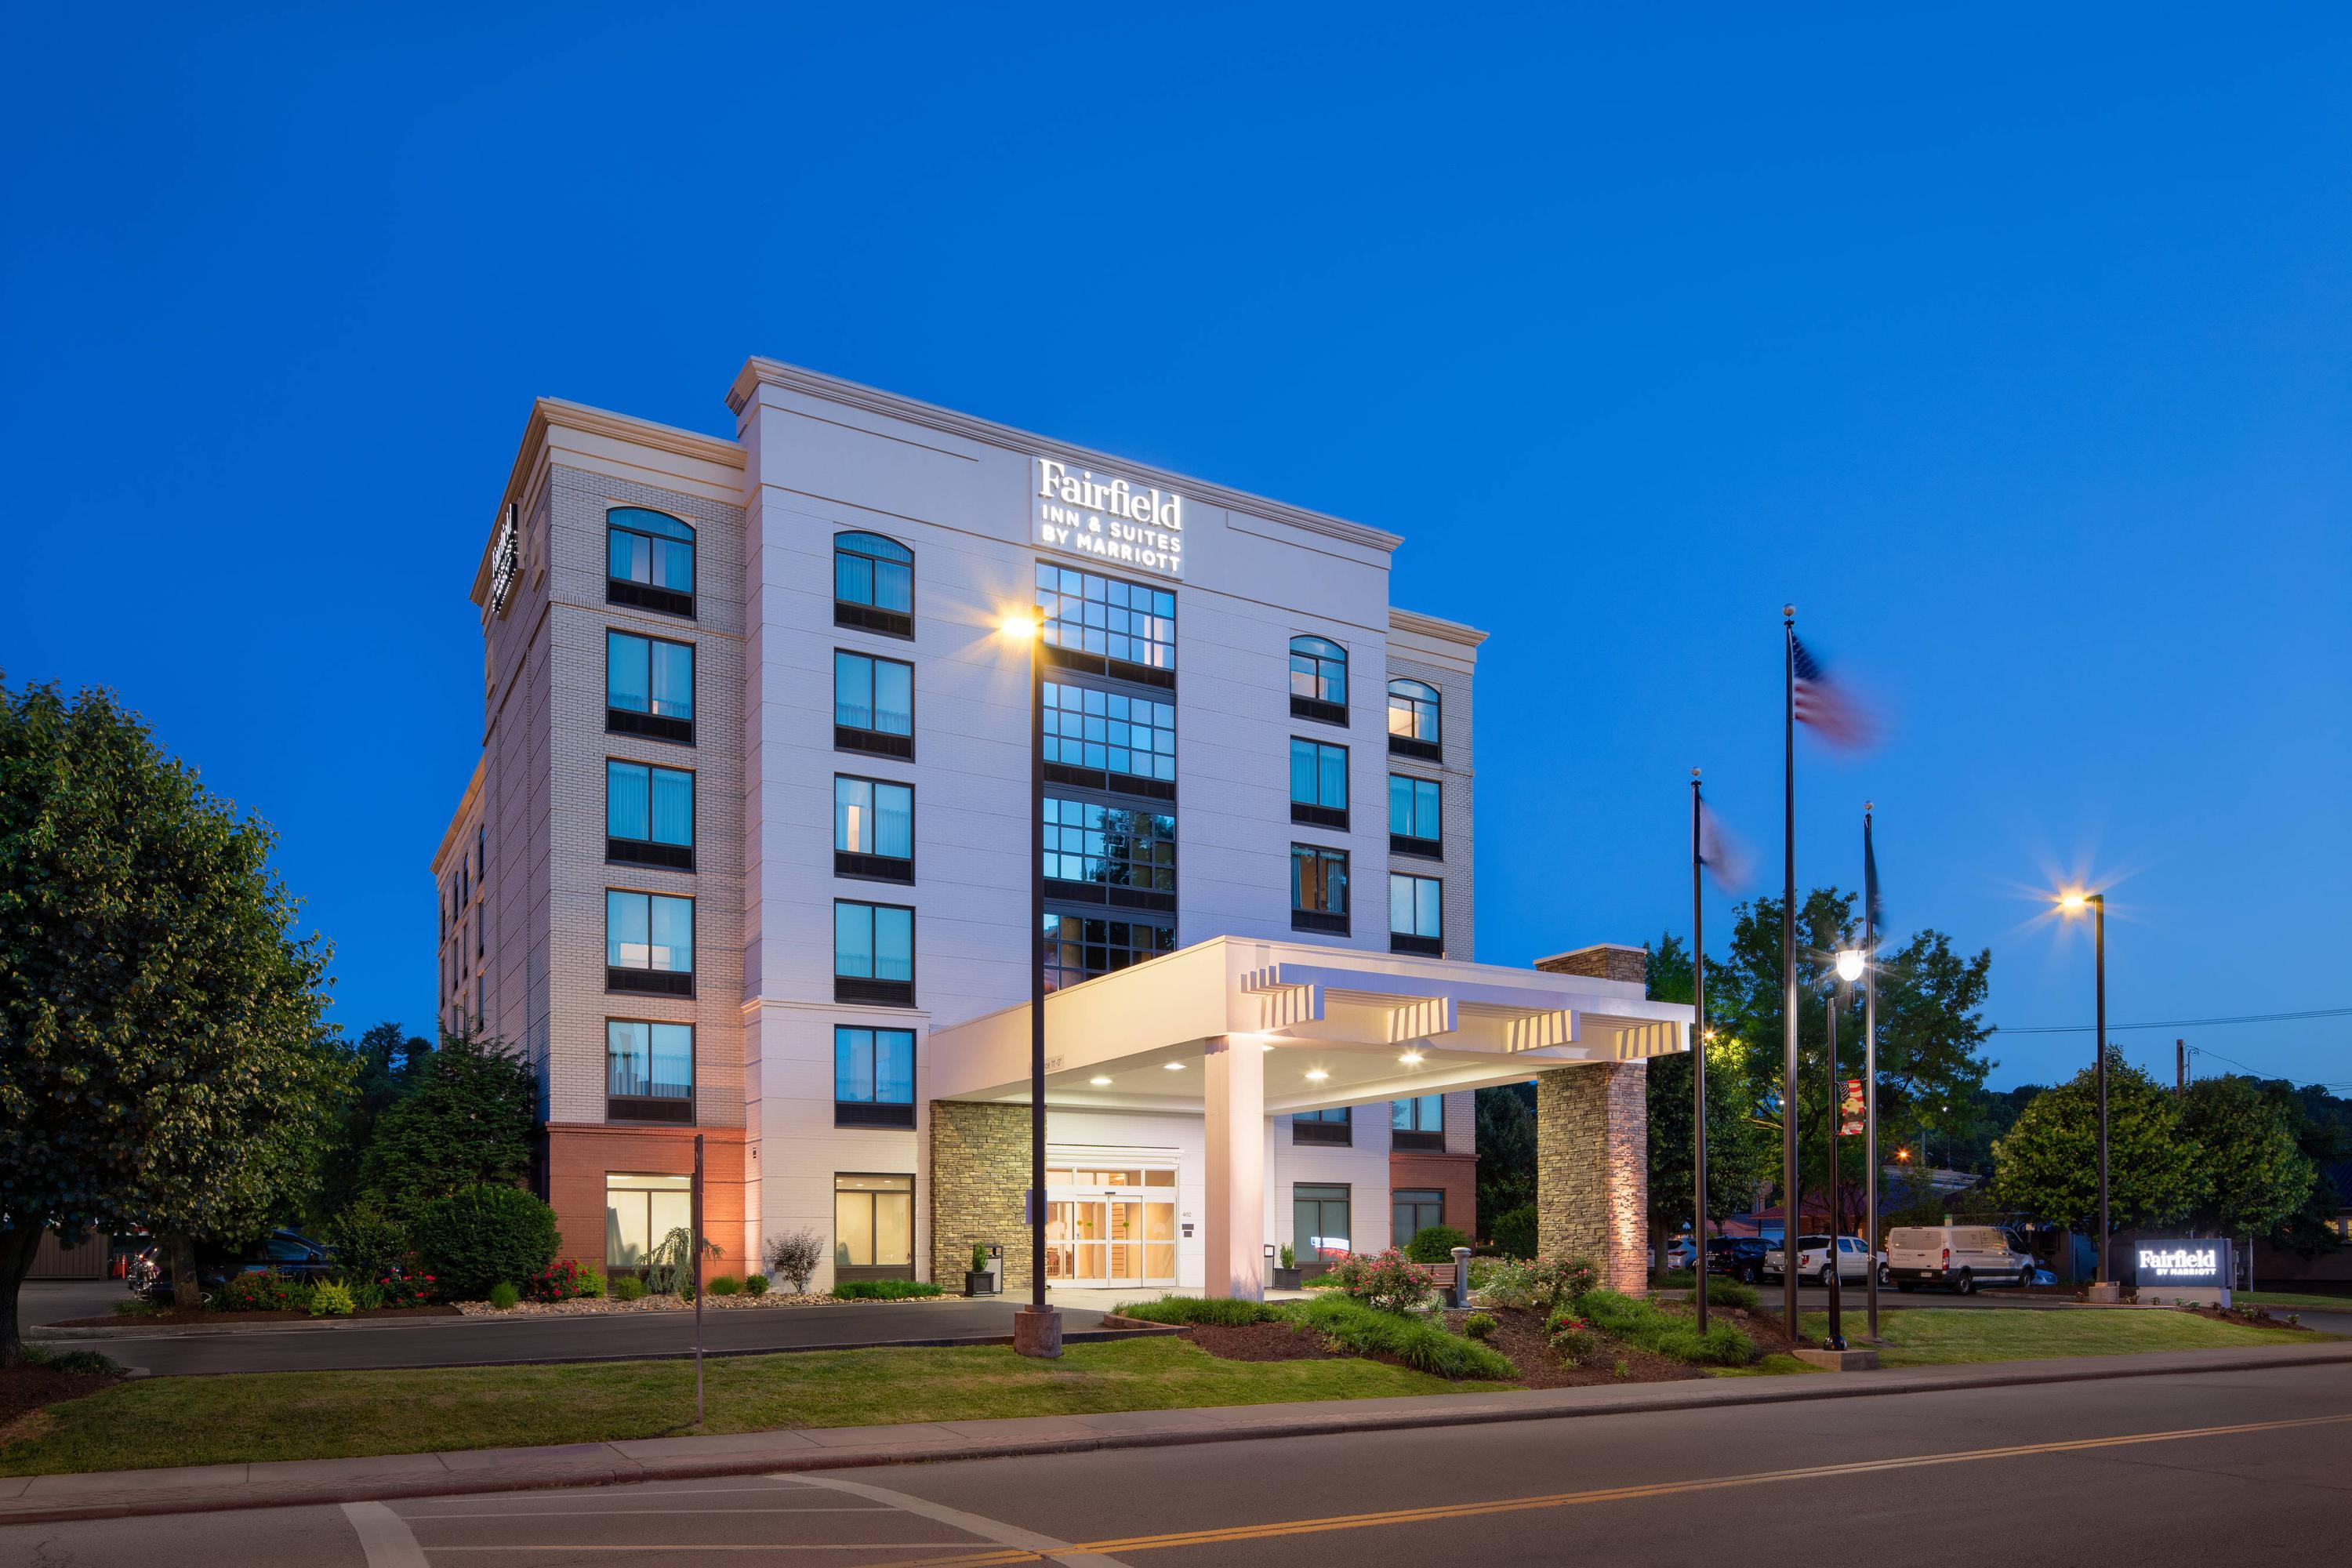 Fairfield Inn and Suites by Marriott Charleston